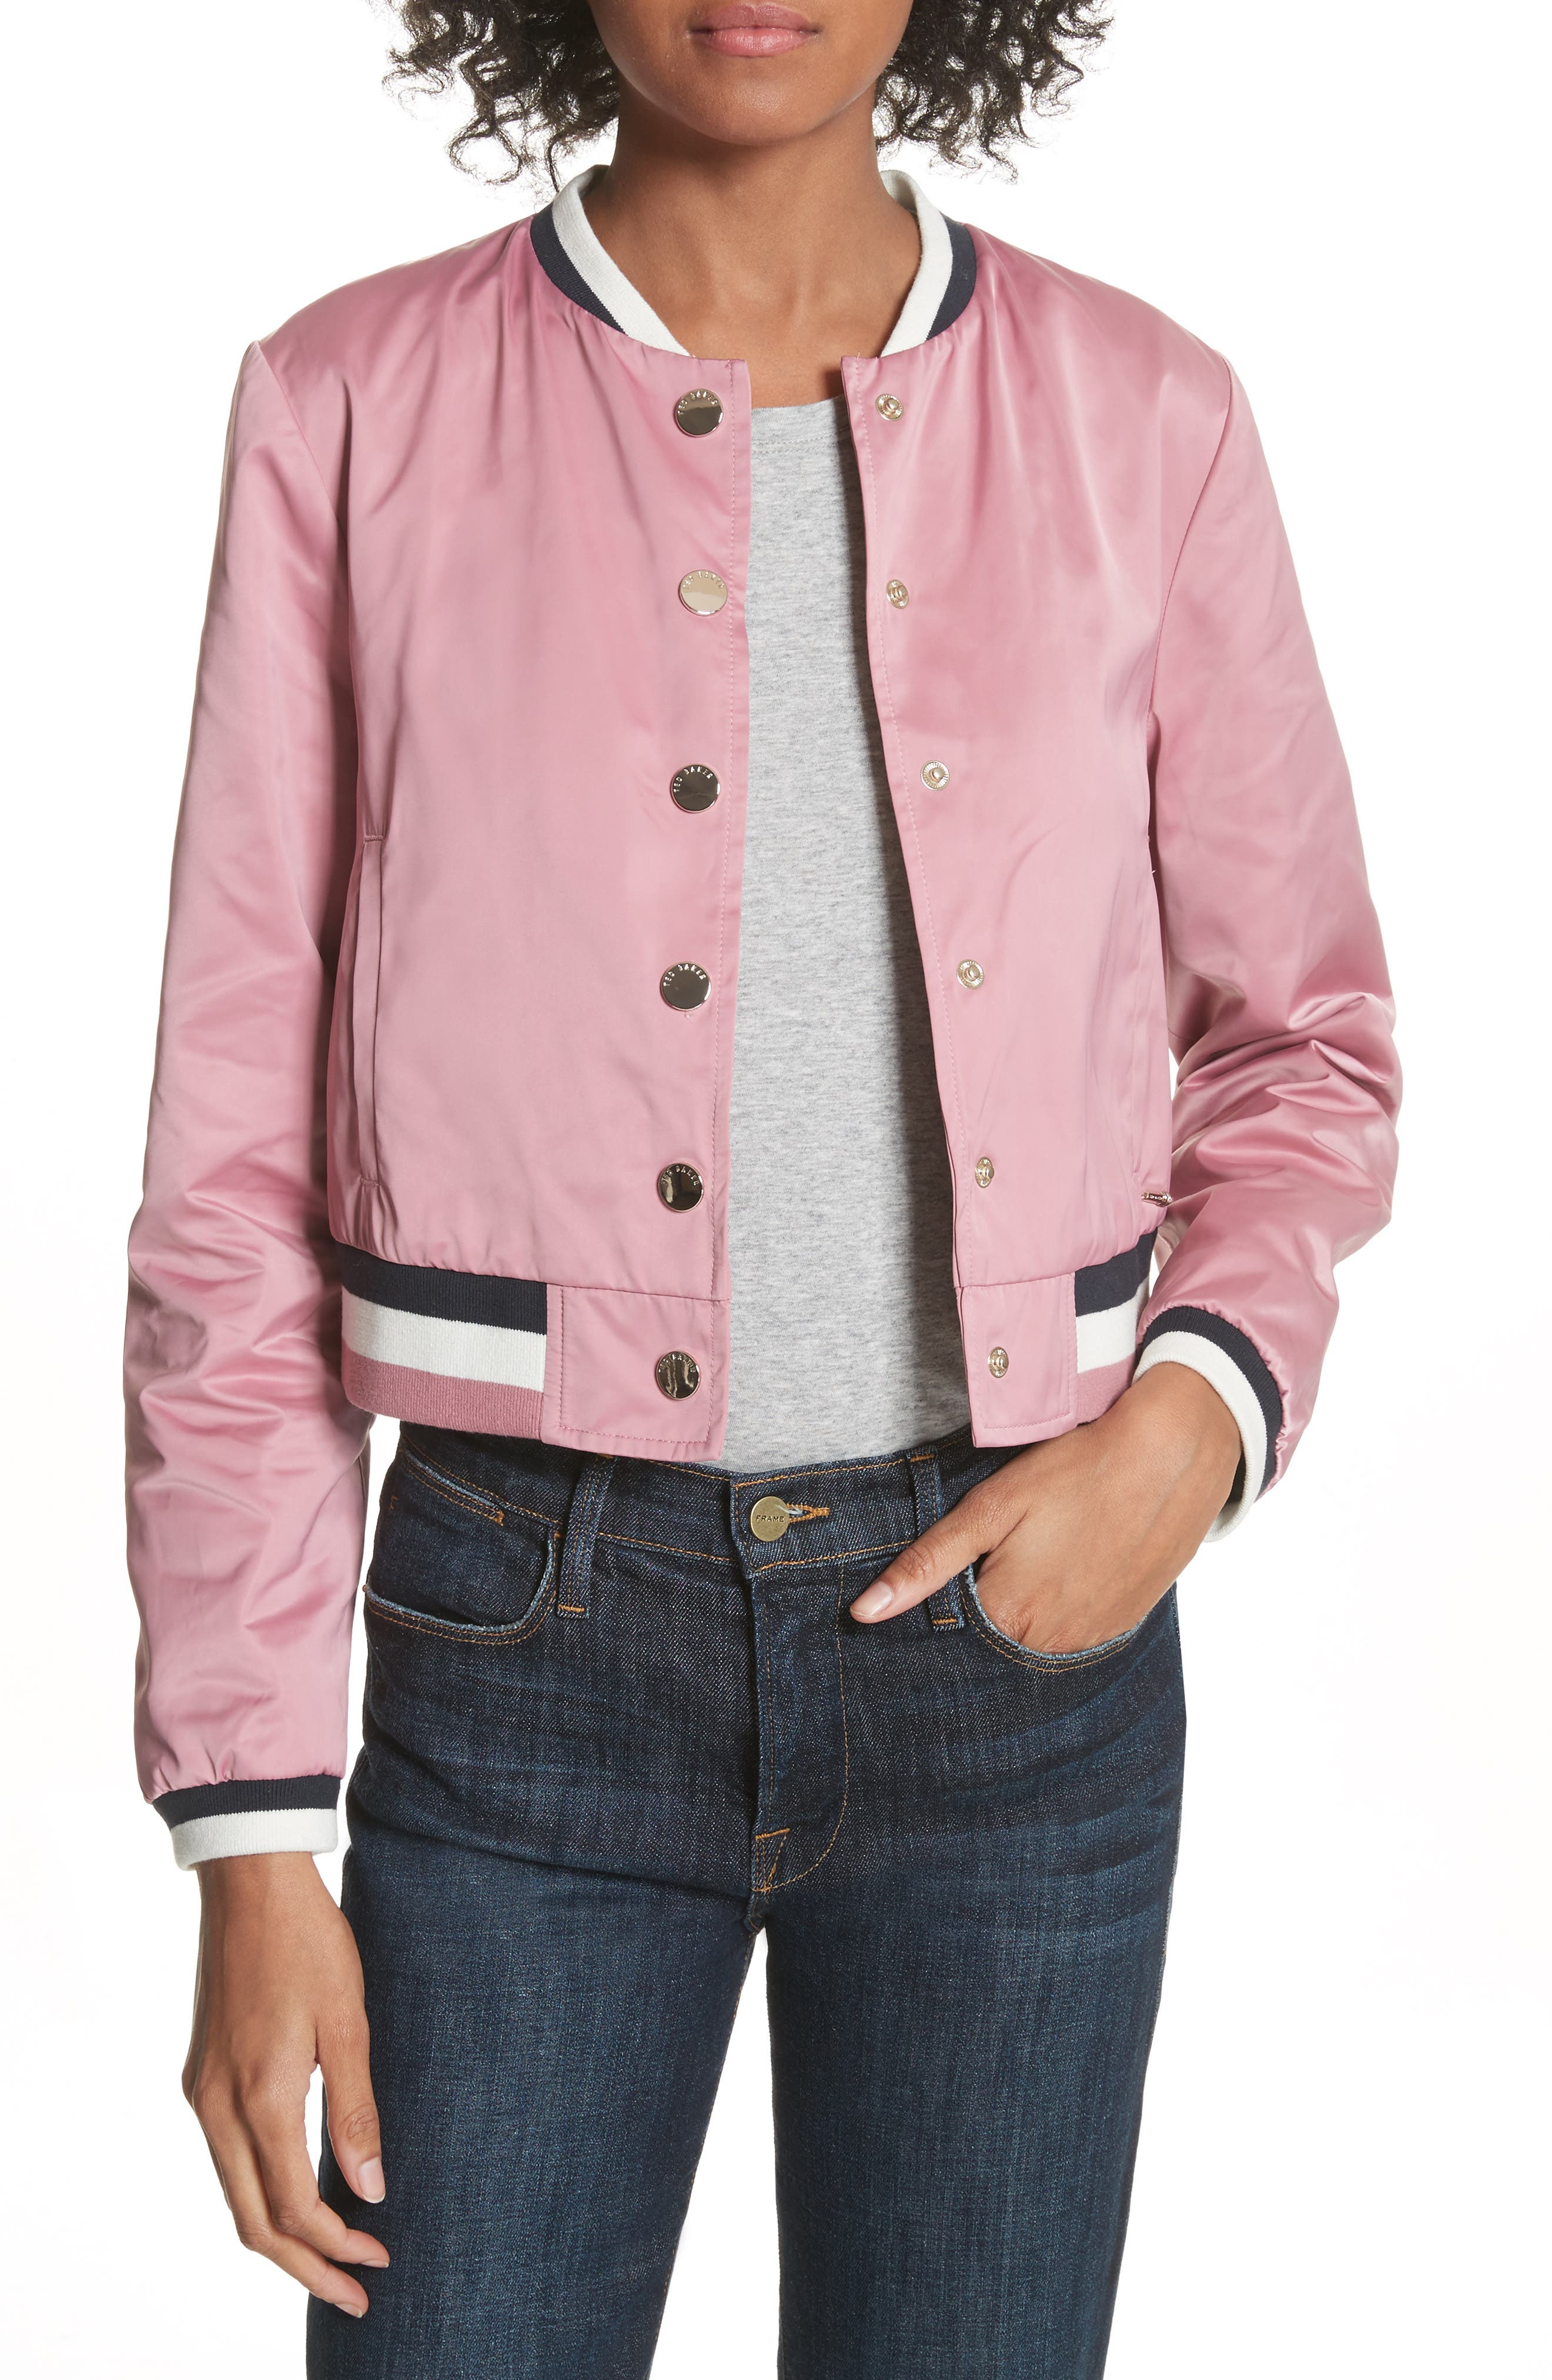 Colour by Numbers Bomber Jacket,                             Main thumbnail 1, color,                             Dusky Pink